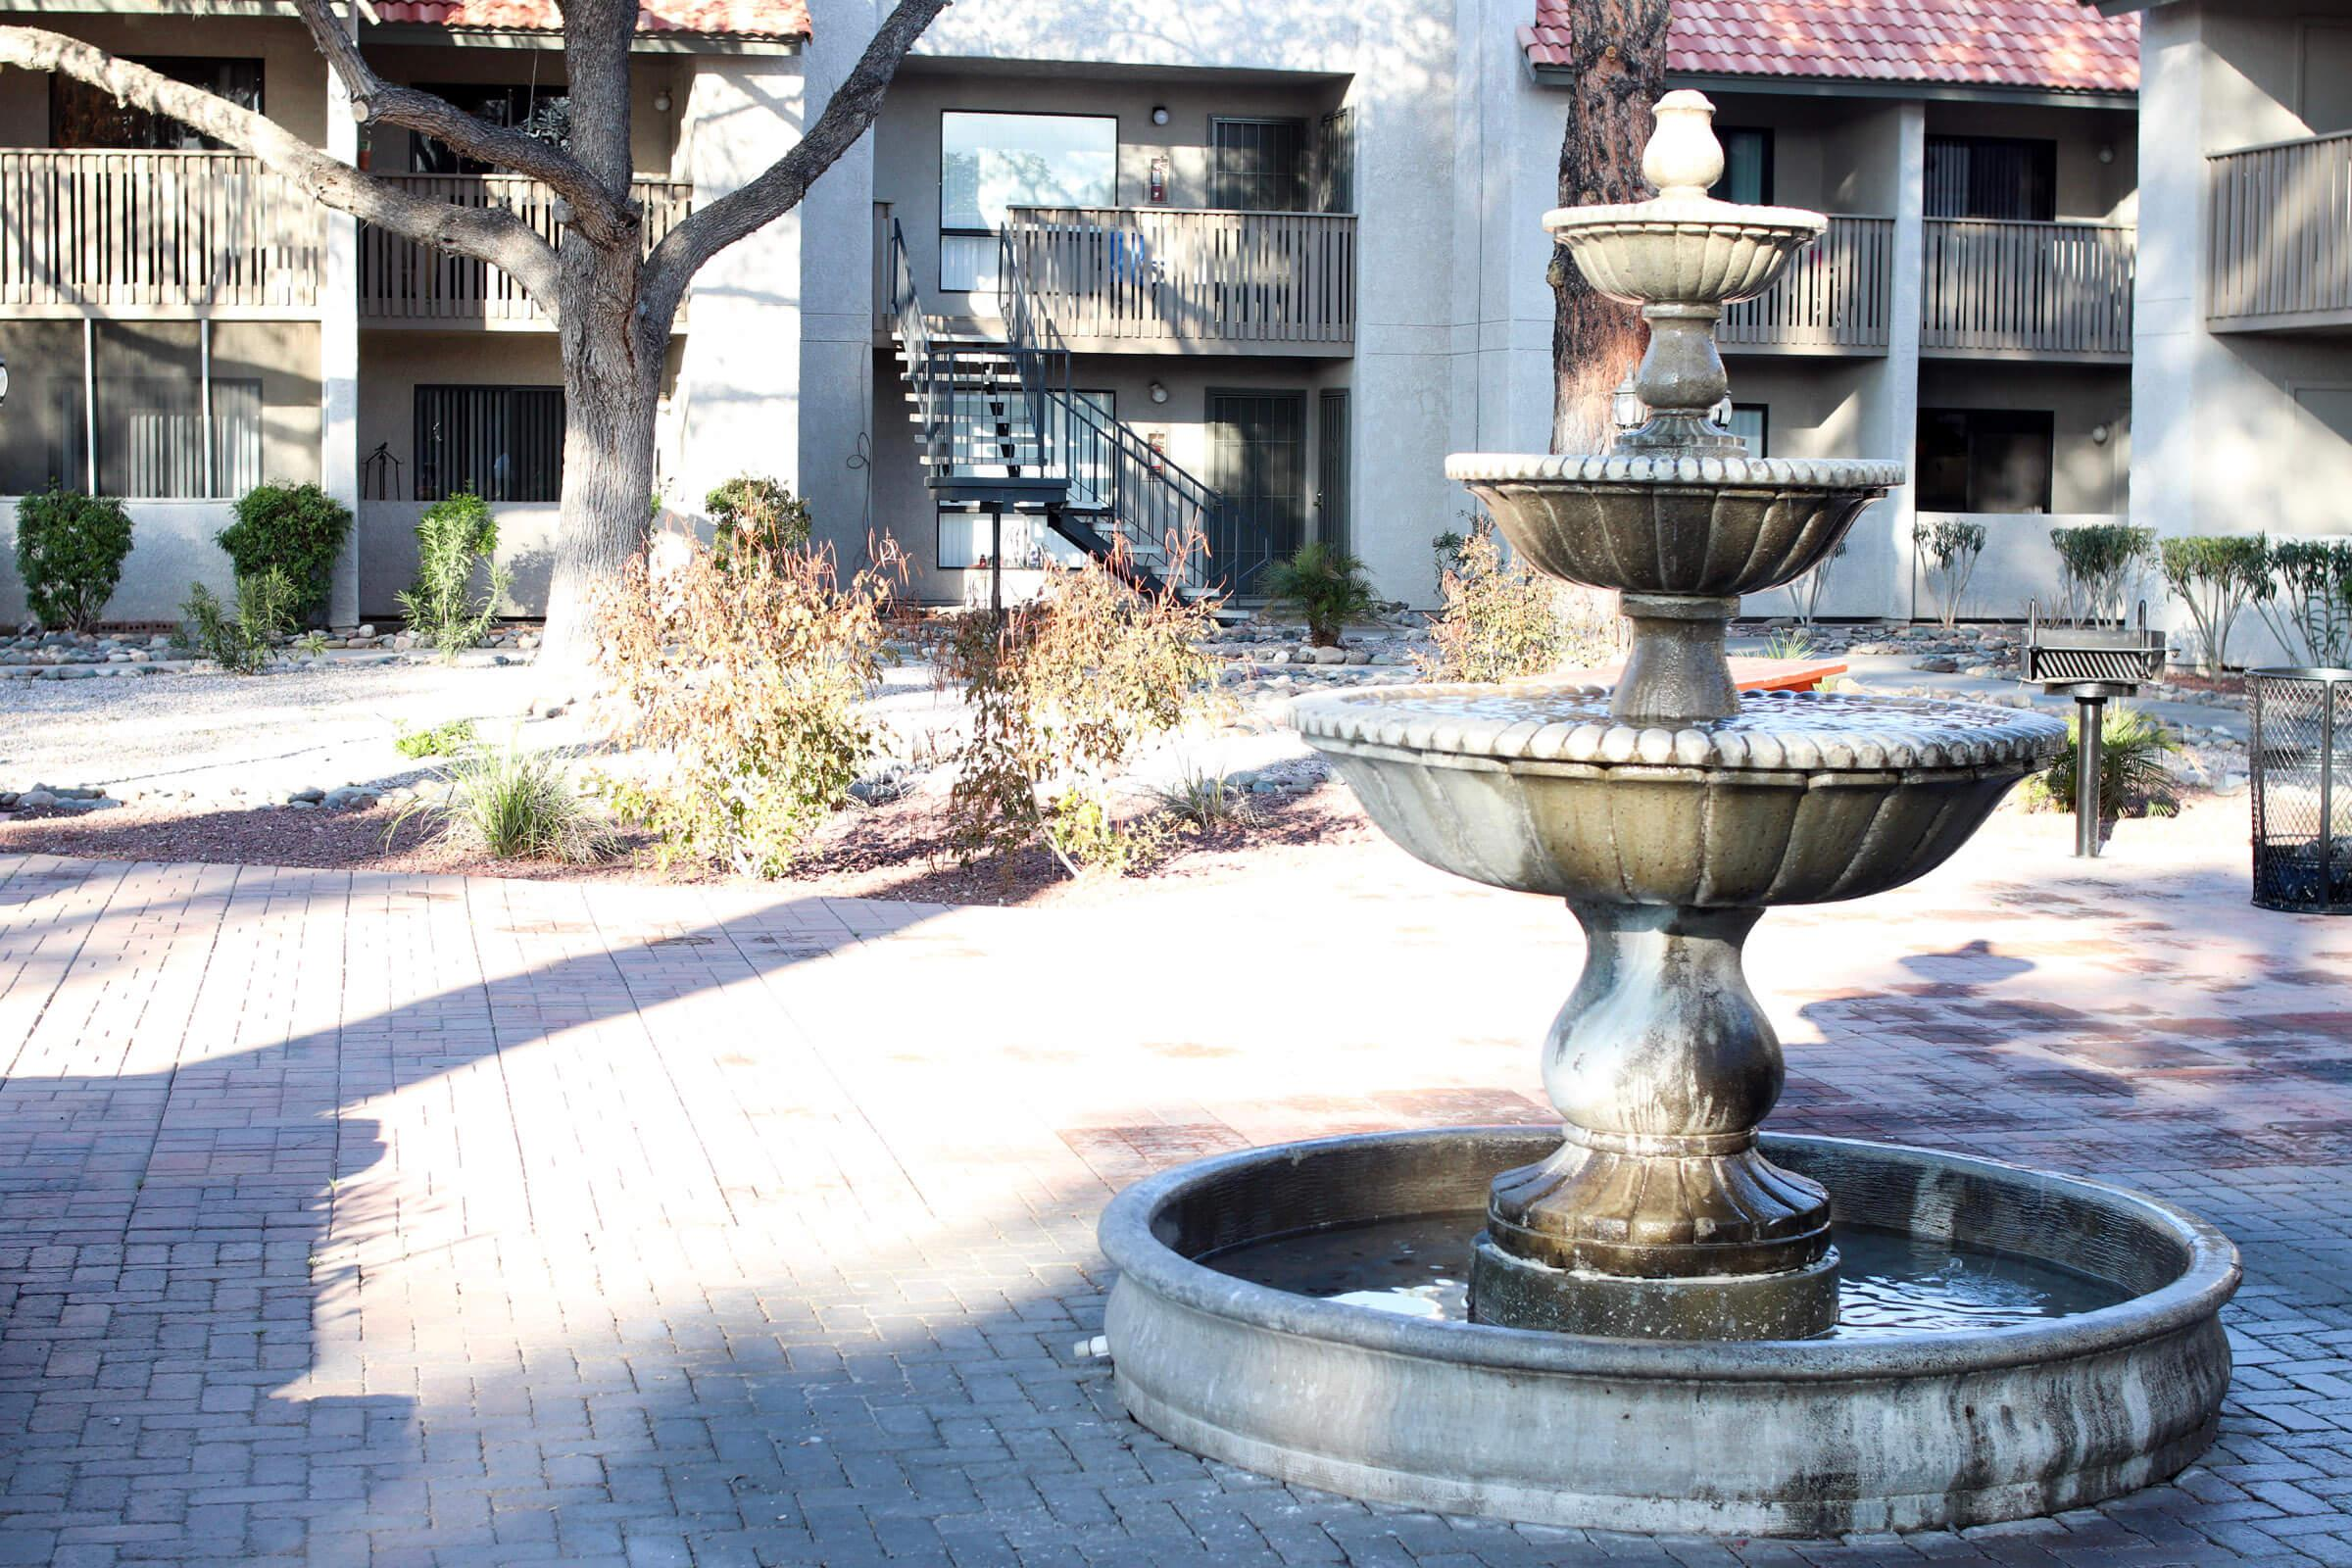 a fountain in front of a building